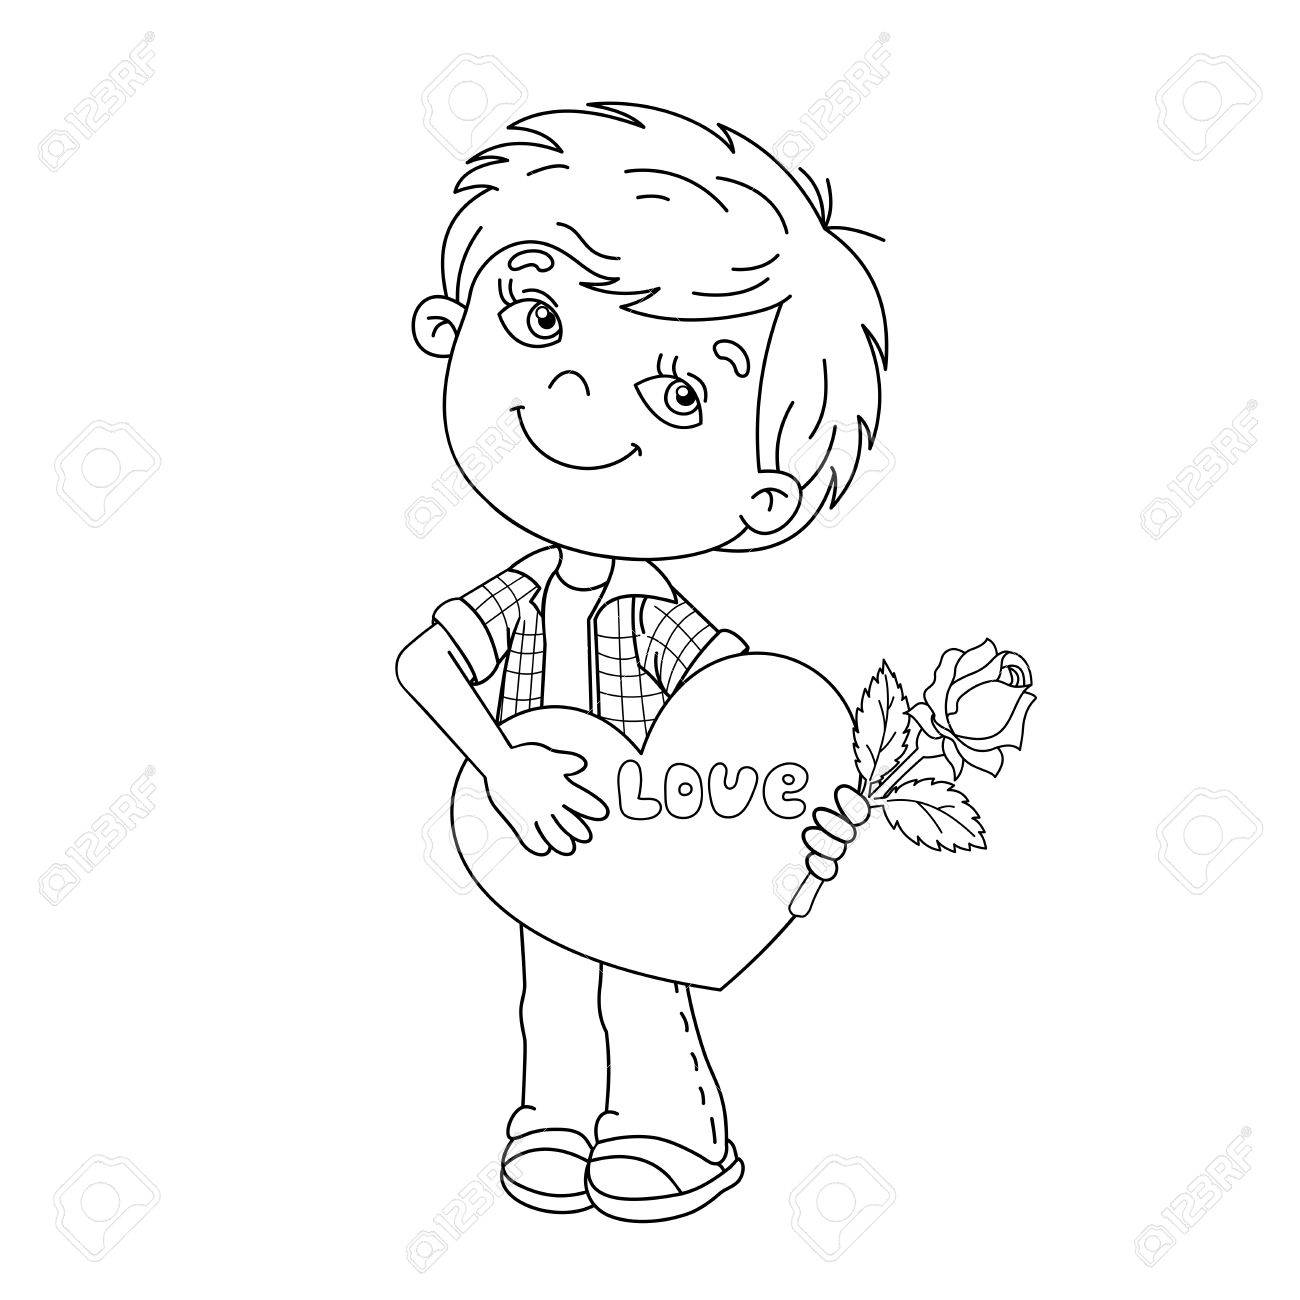 1300x1300 Coloring Page Outline Of Cartoon Boy With Rose In Hand With Heart